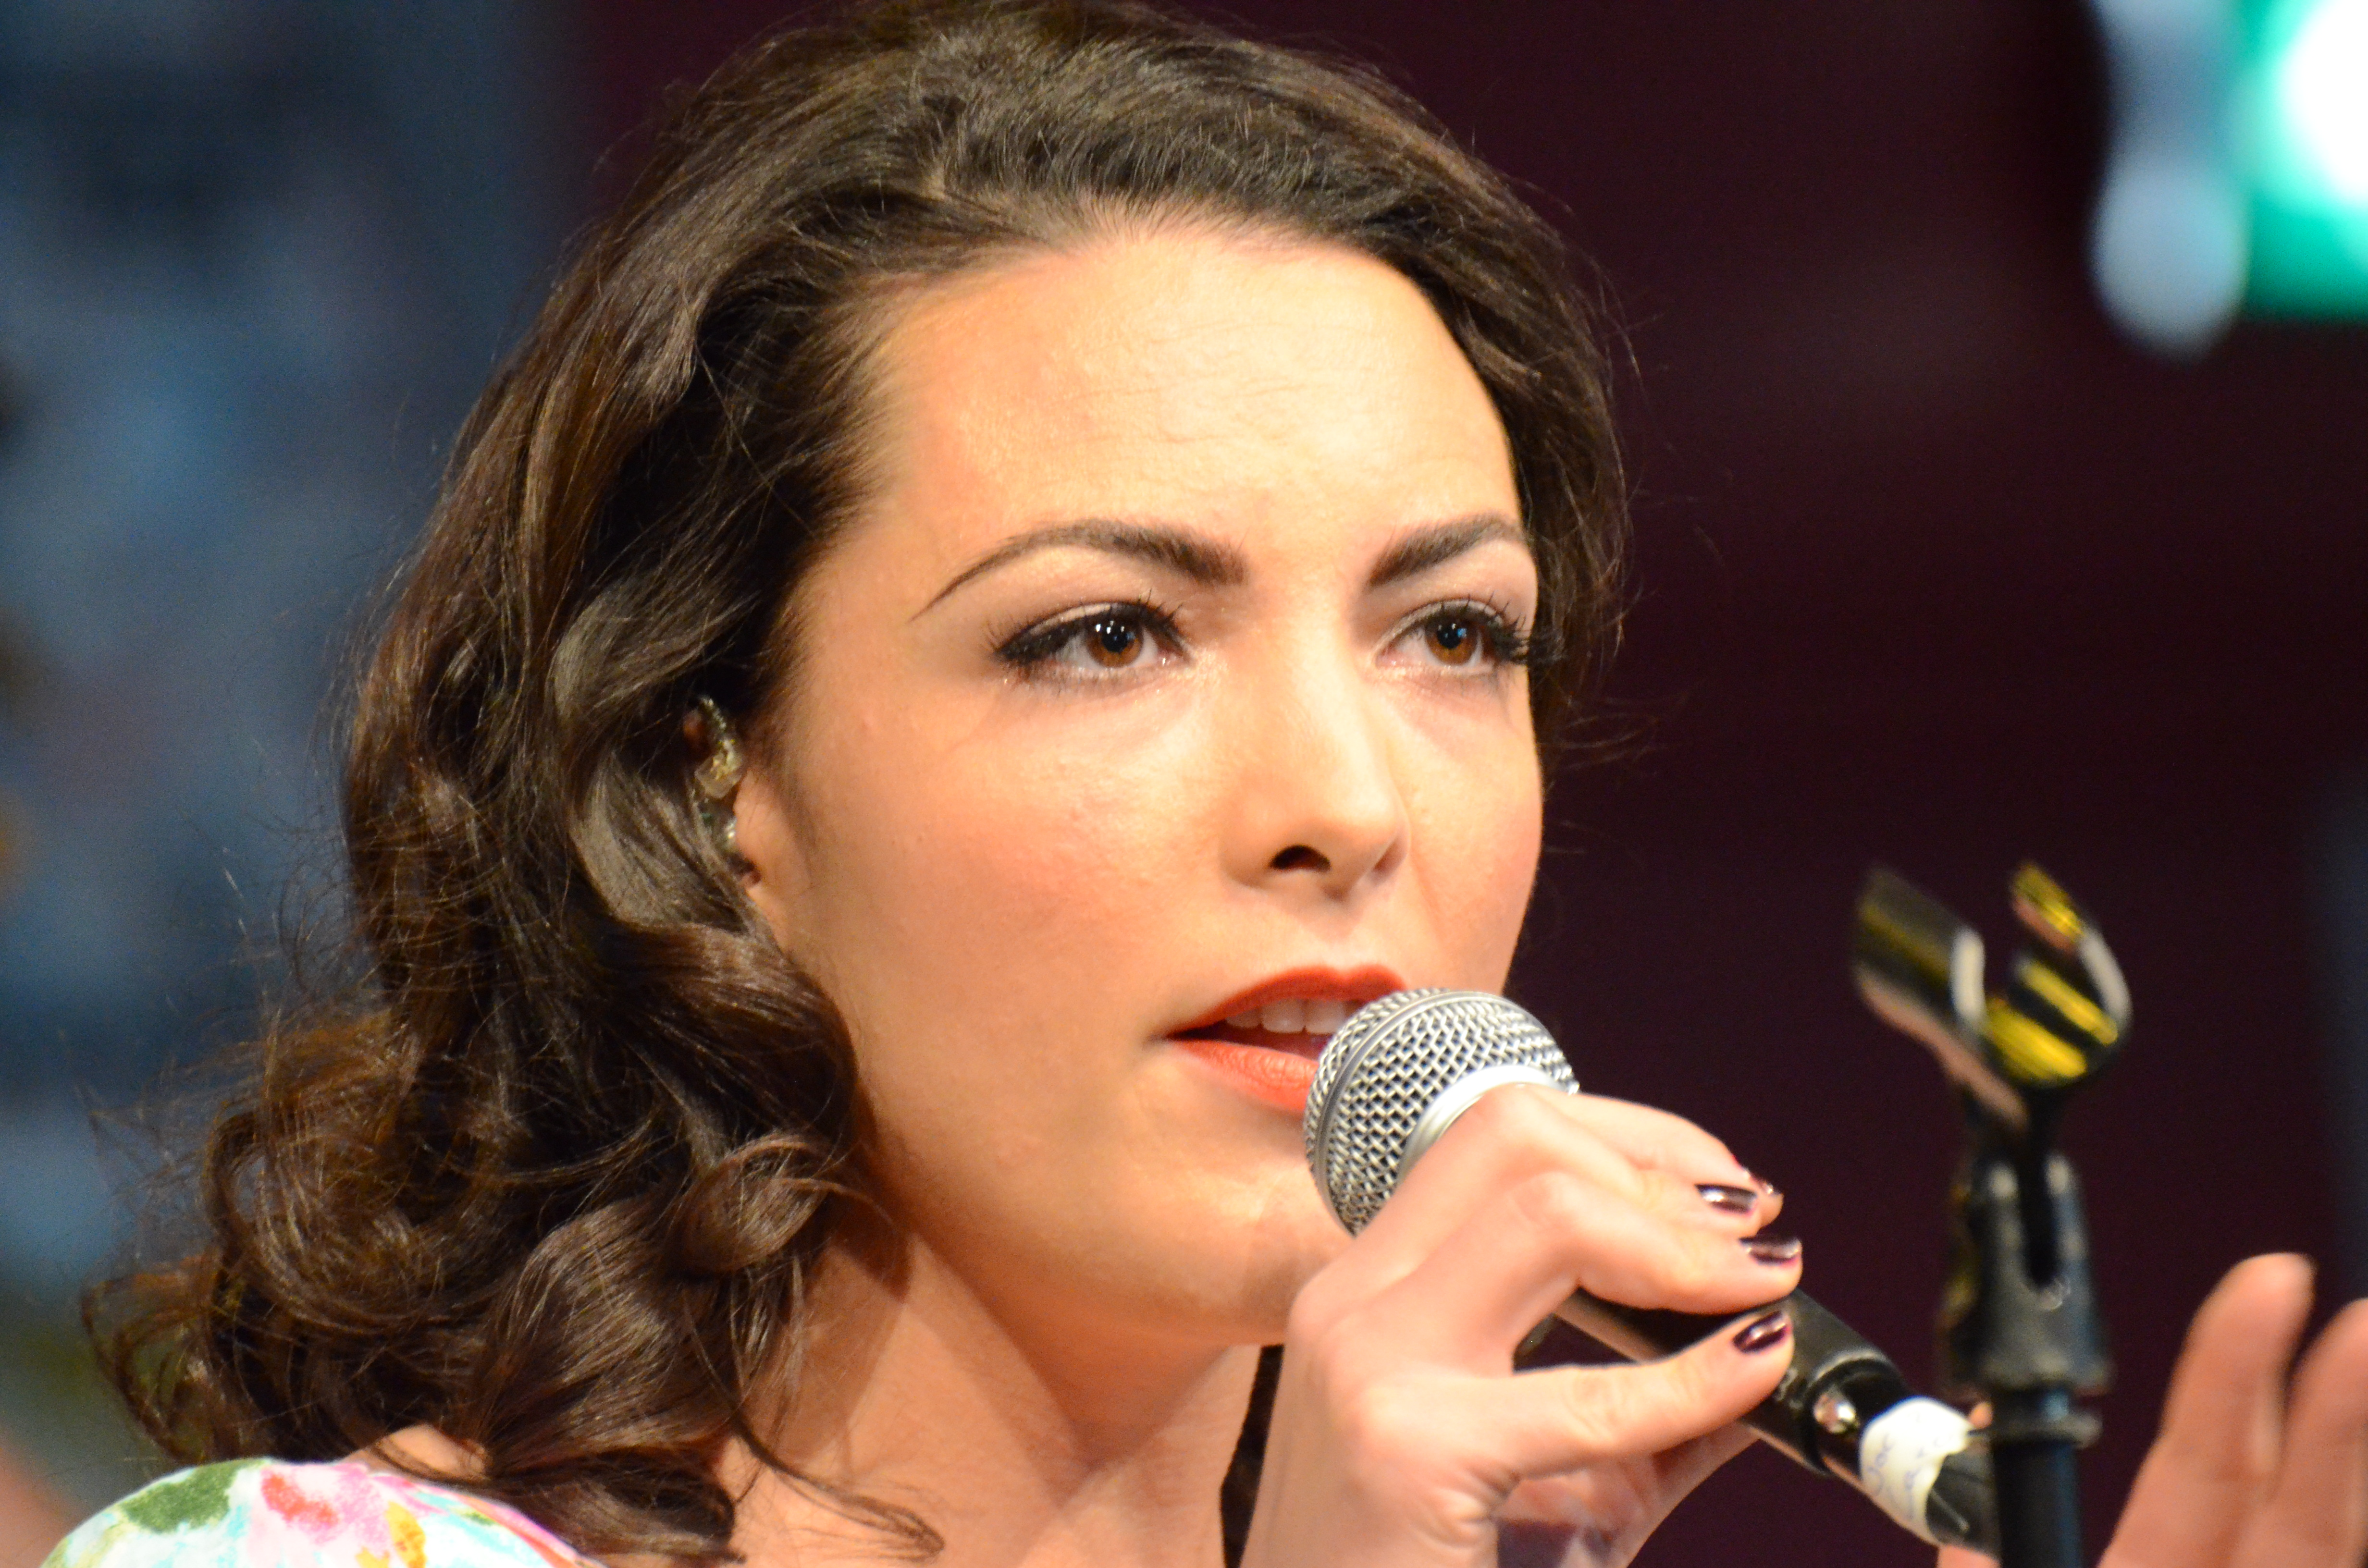 The 37-year old daughter of father (?) and mother(?) Caro Emerald in 2018 photo. Caro Emerald earned a  million dollar salary - leaving the net worth at 2.3 million in 2018